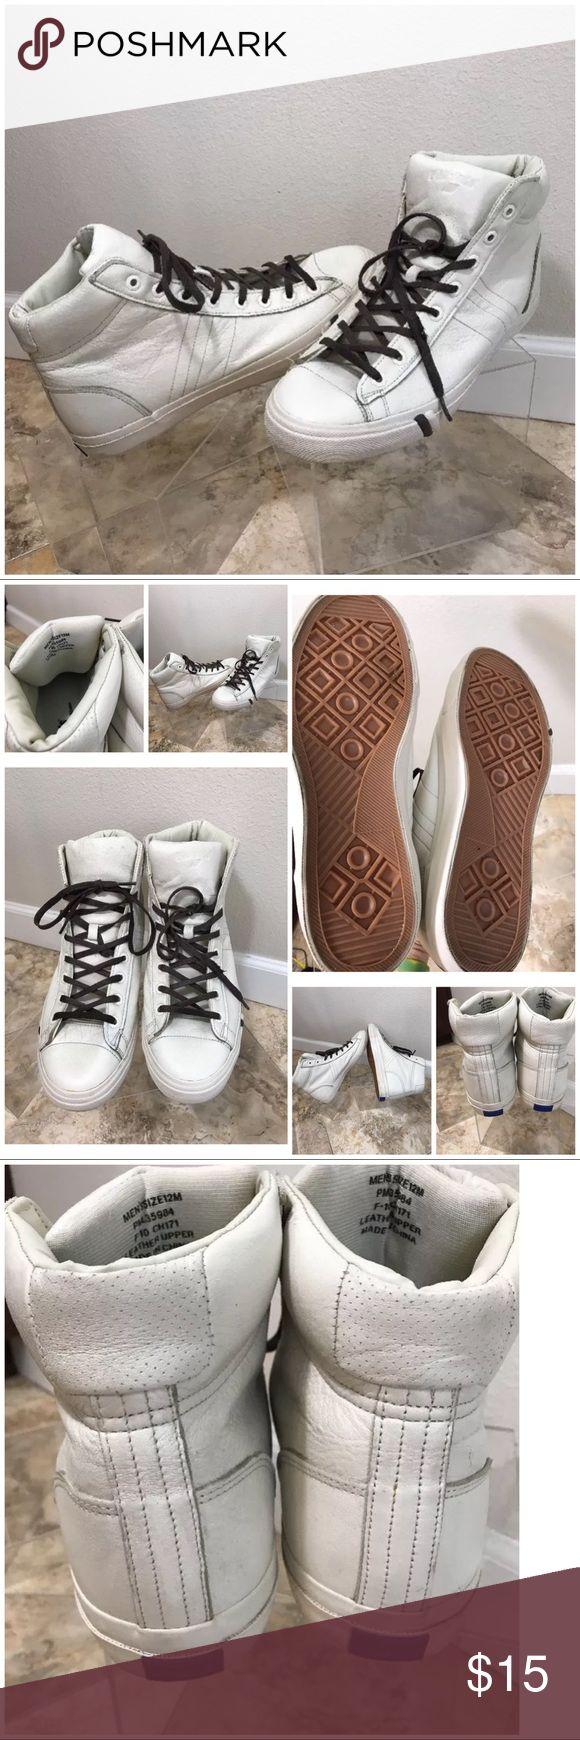 Pro keds men's sneakers size 12 white leather Prokeds men's shoes size 12 white leather hightops prokeds Shoes Athletic Shoes